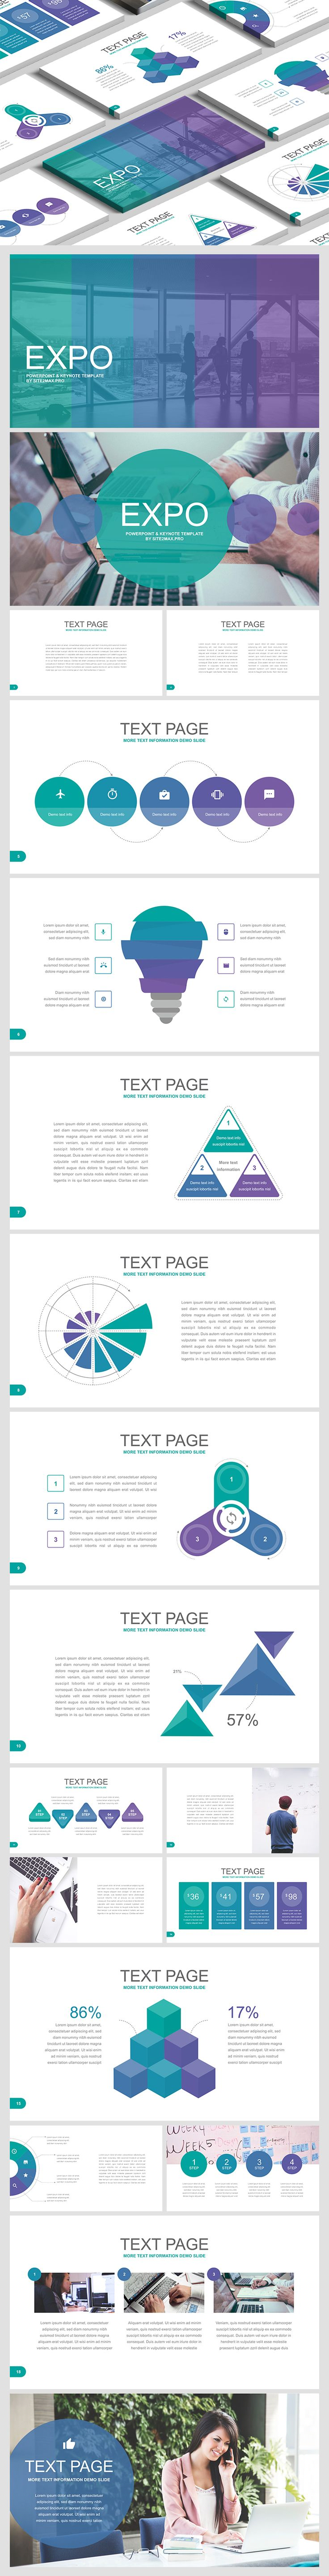 35 best free keynote template images on pinterest circles ideas the expo free powerpoint template is suitable for marketers the instruments allow you to create the presentation in several minutes more free templates toneelgroepblik Image collections